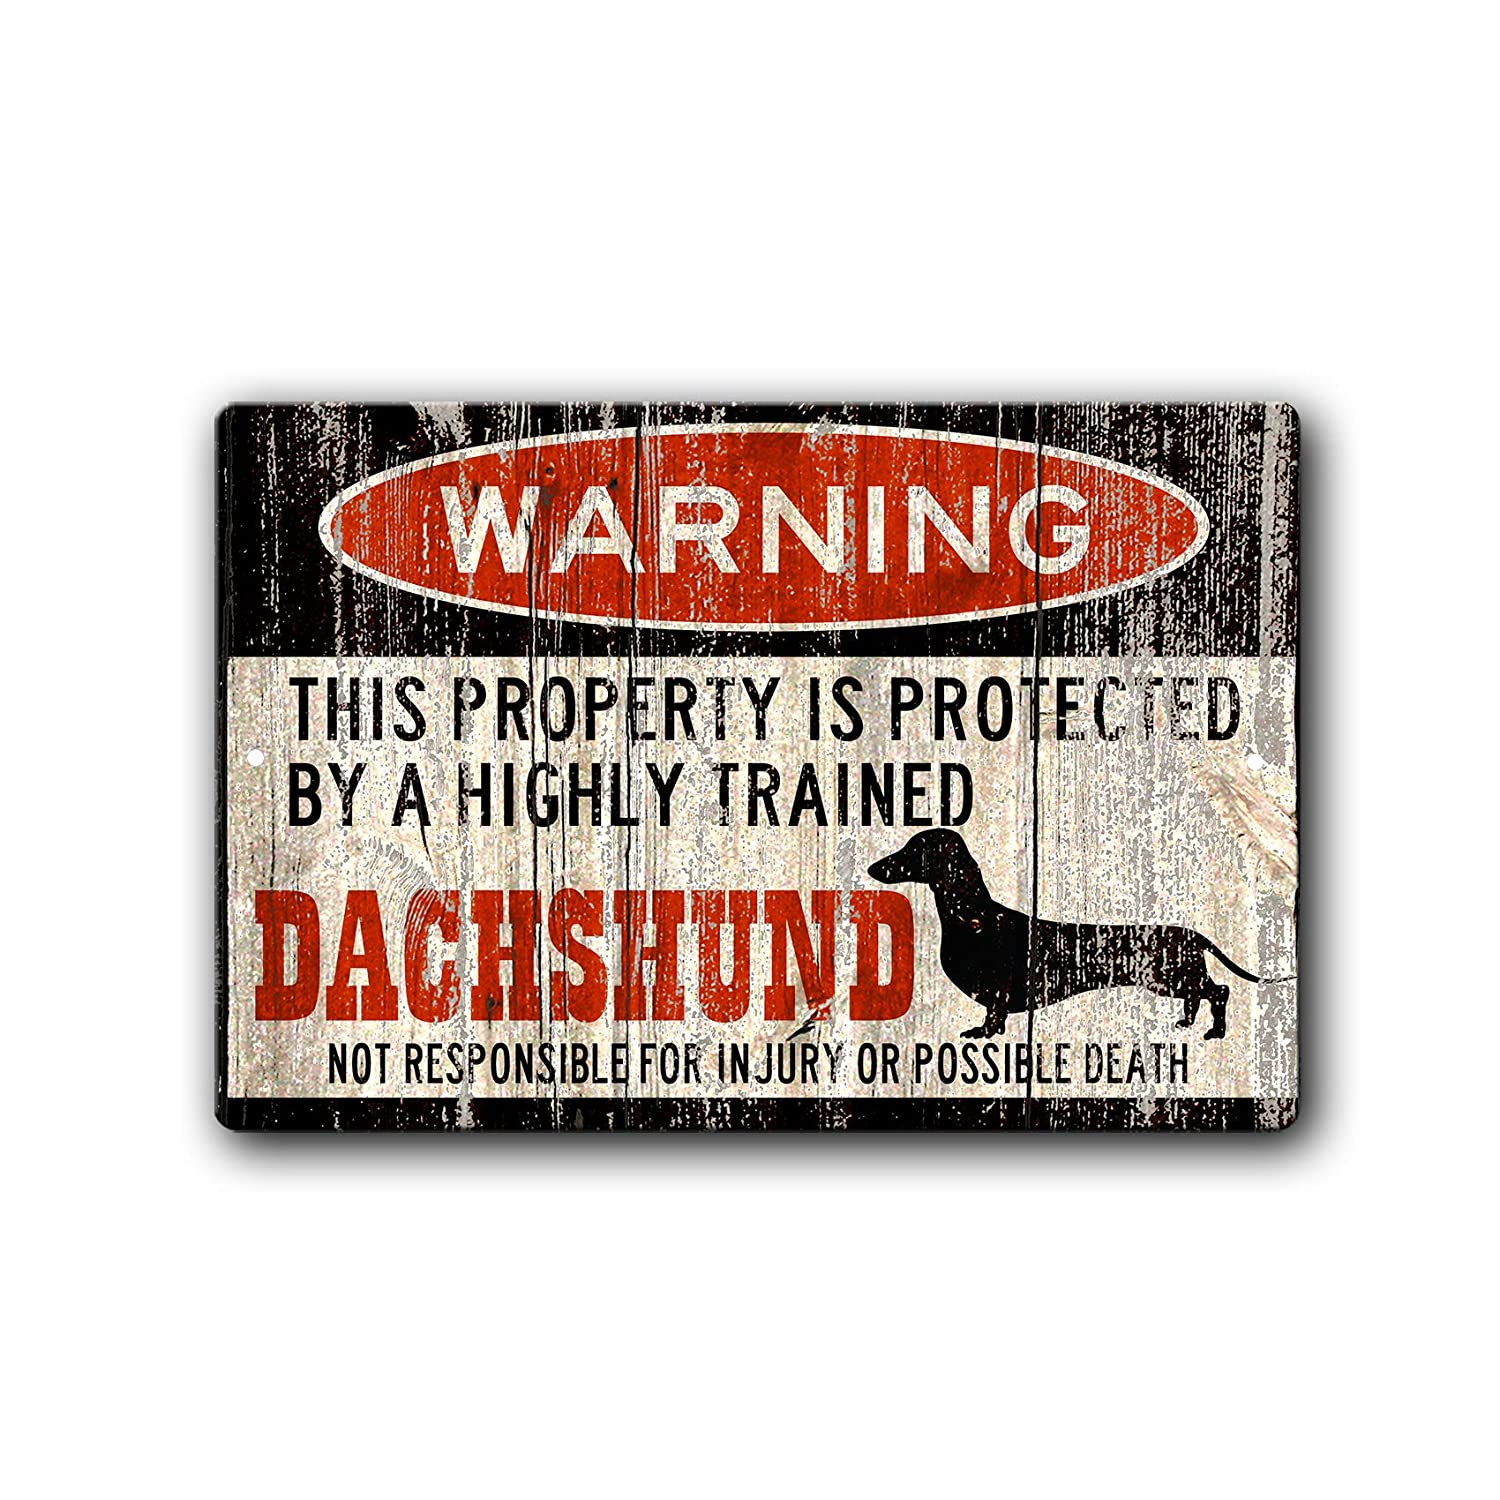 At the price Dachshund Sign Funny dog warning sign Gift Baltimore Mall Dachshun